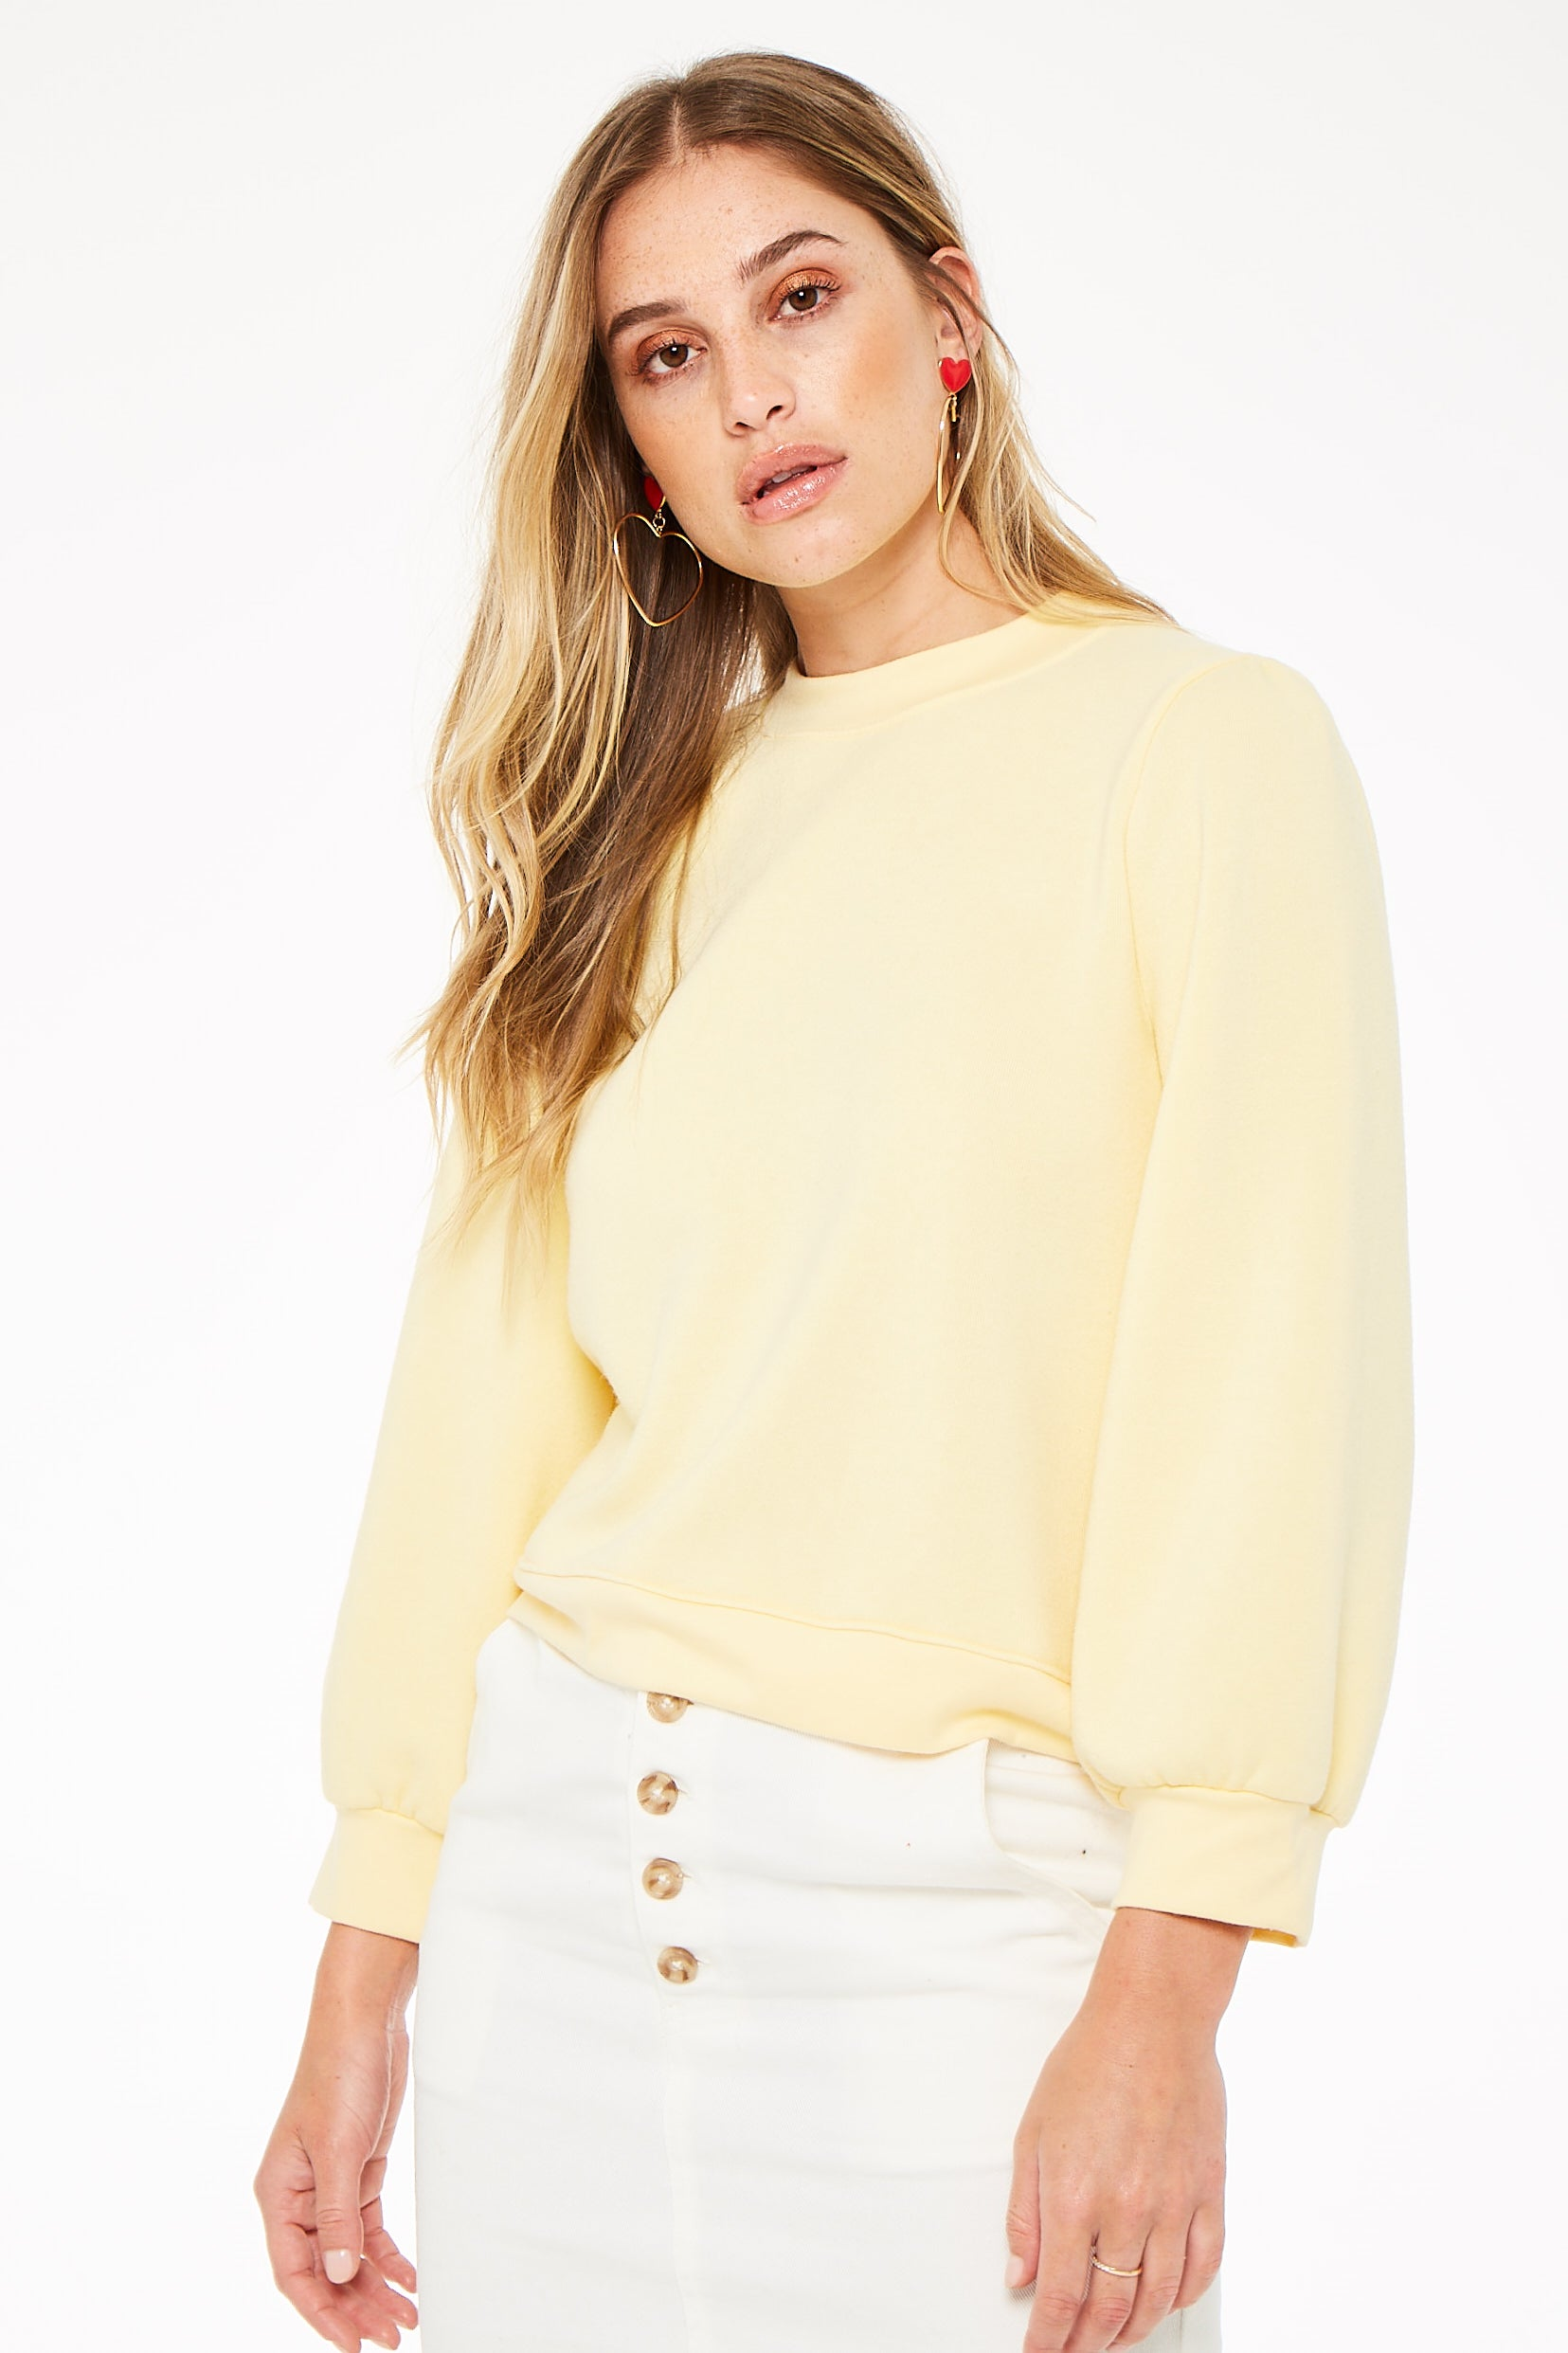 Crush On You Butter Yellow Sweatshirt